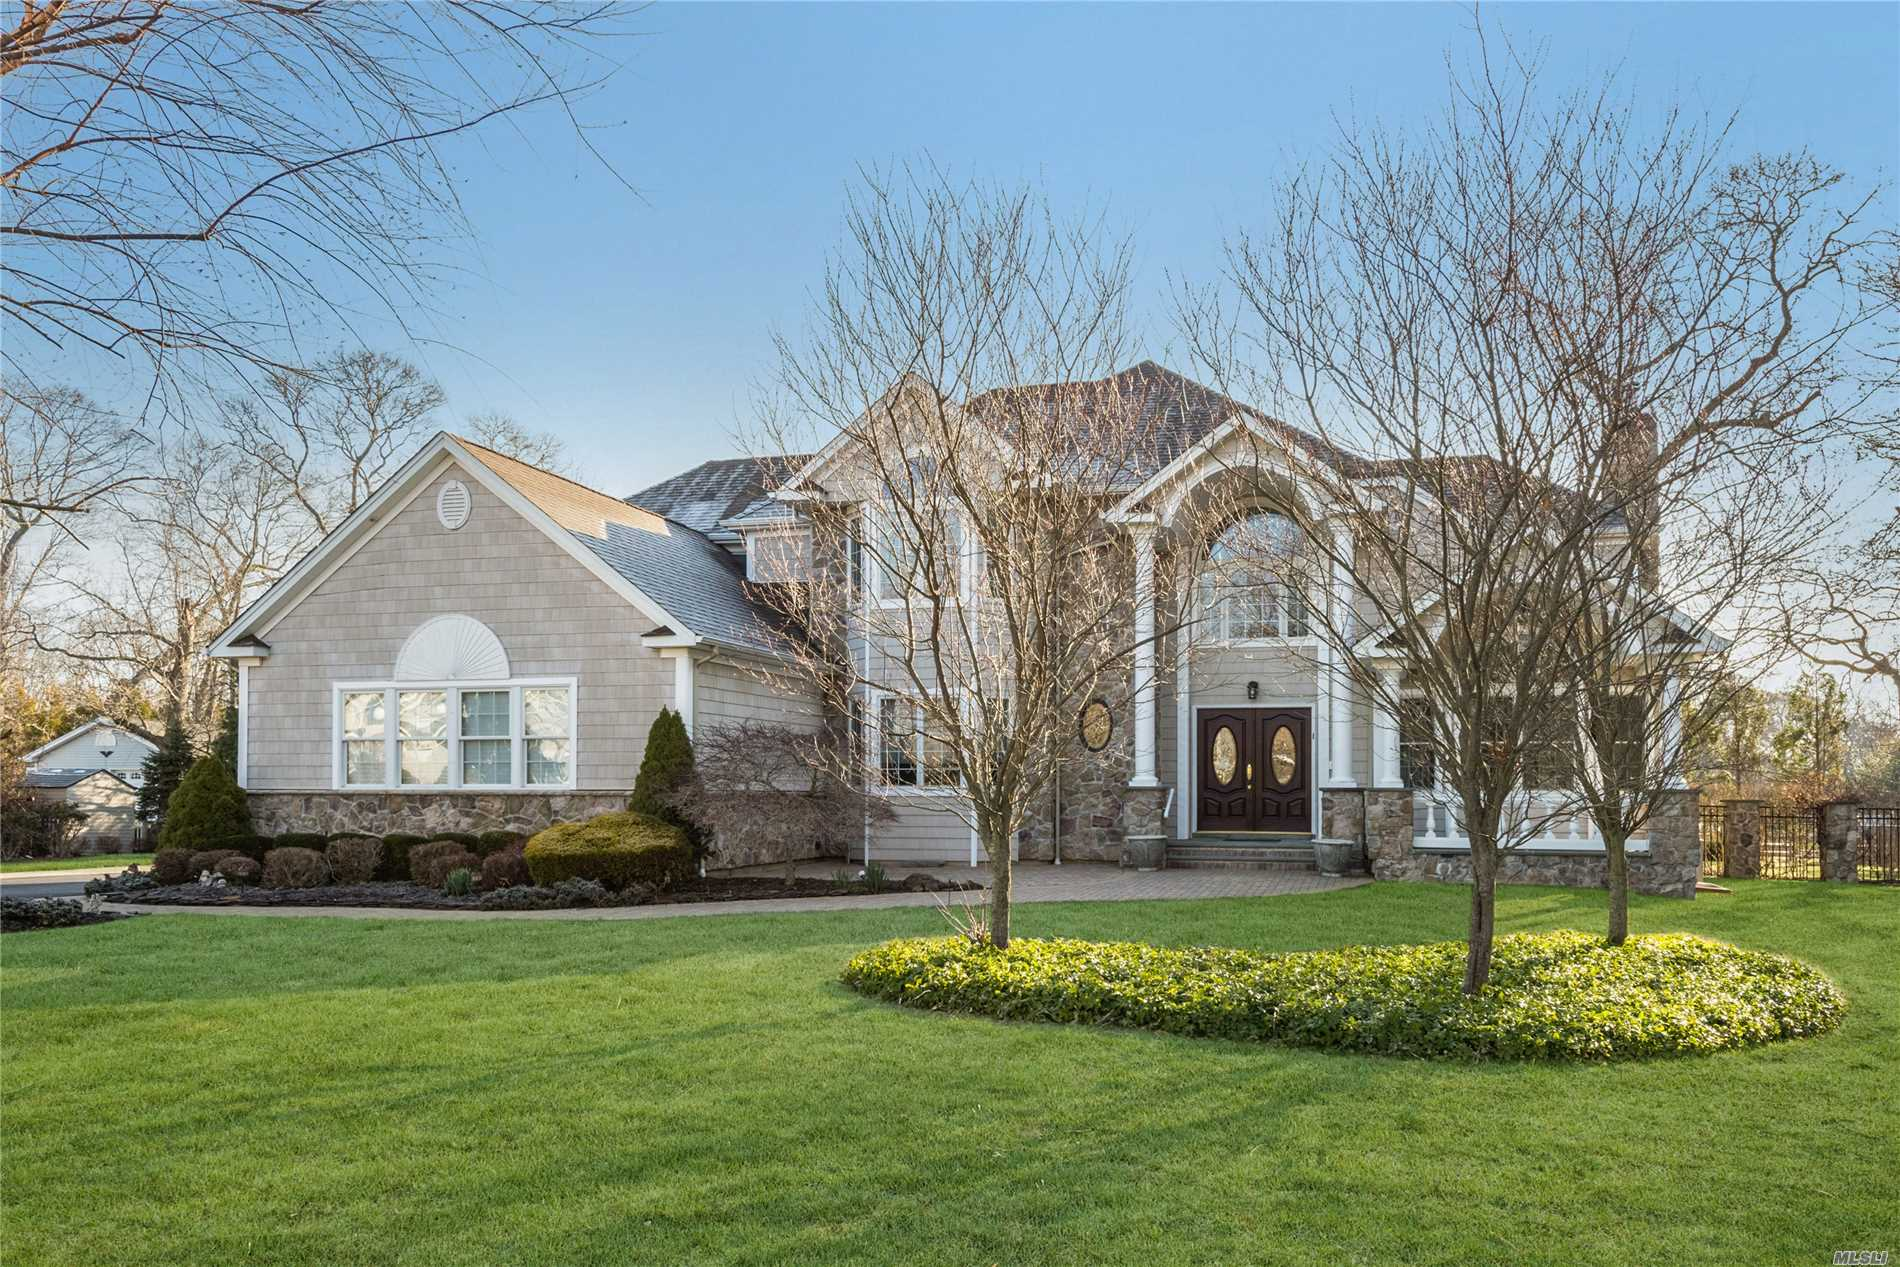 Spectacular 3600 Sq. Ft. Home In The Landings At Harts Cove W/5 Br, 3.5 Bths. Hw Floors, Radiant Heat Under Tile Floors, Custom Moldings, Elegant Kitchen, Fantastic Butler's Pantry Area, Luxurious Master Bedroom With Lavish Soaking Tub, 1st Floor Guestroom Or Possible Maid's Quarters, 900 Sq Ft Garage W/ Extra High Ceilings For Suv Parking. Outside Enjoy A Private Yet Lush Resort-Style Backyard: In-Ground Pool, Paver Patios, Multi-Level Seating Areas - In Other Words, The Perfect Paradise!